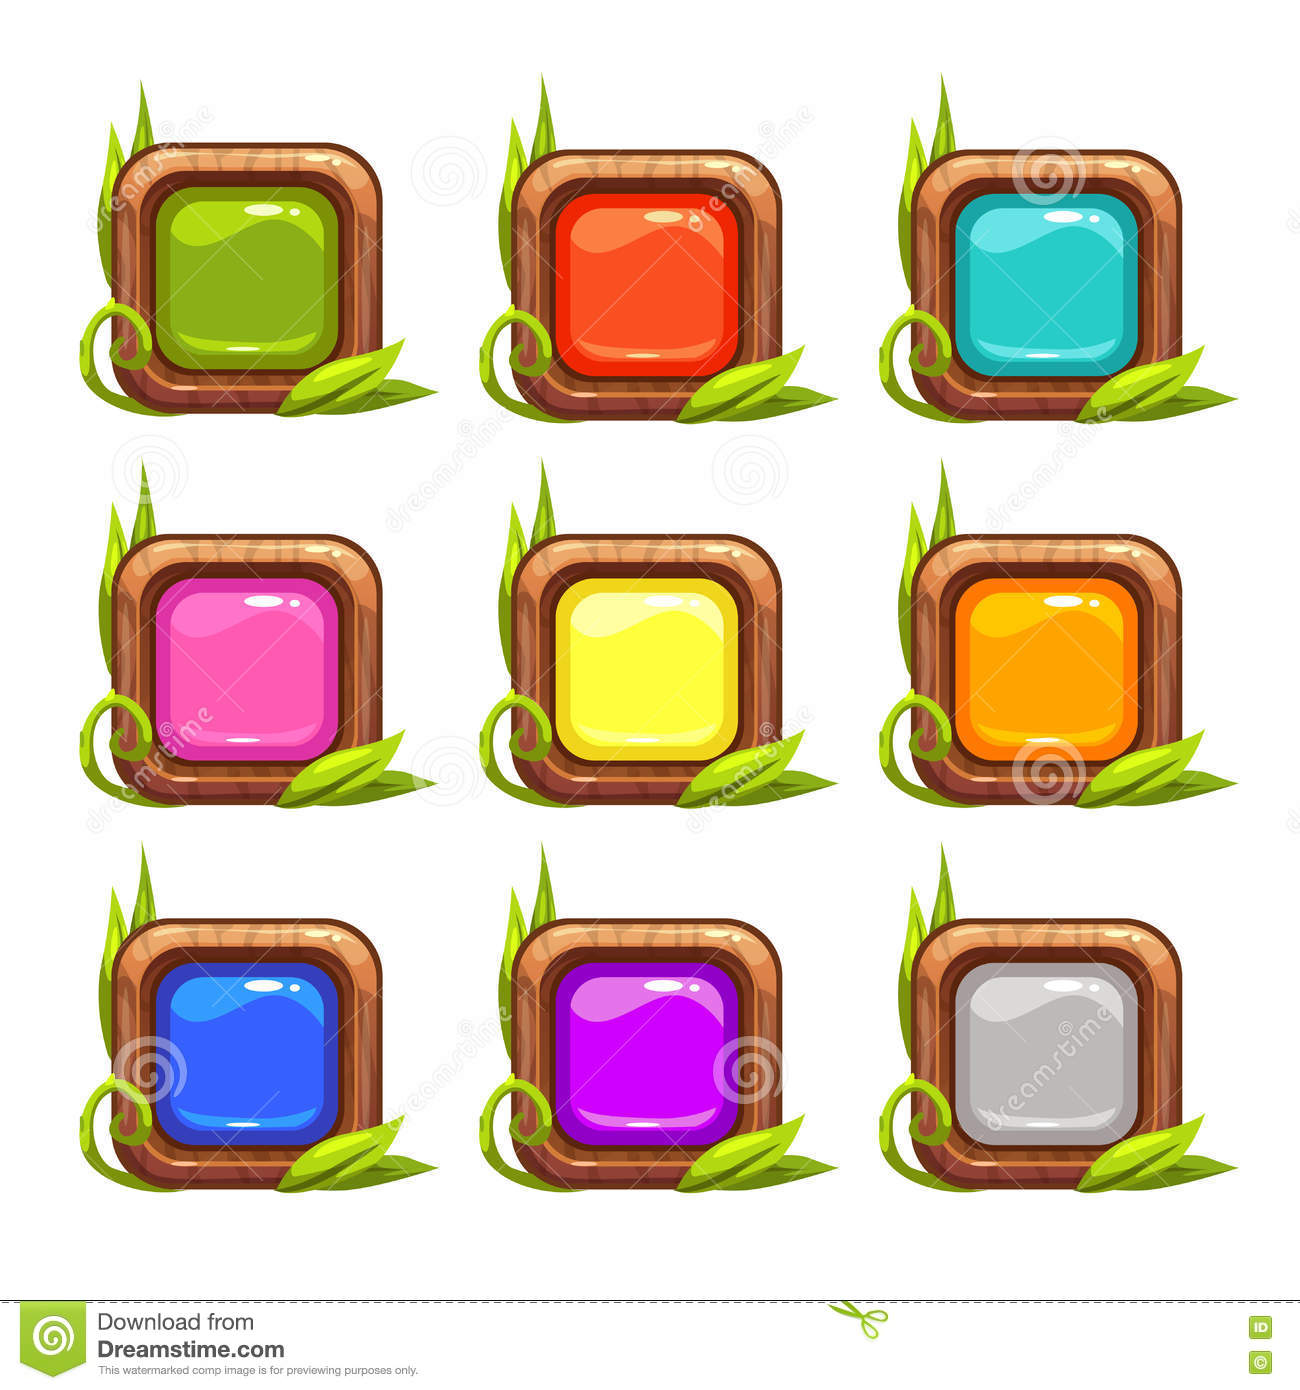 Cartoon vector square buttons set